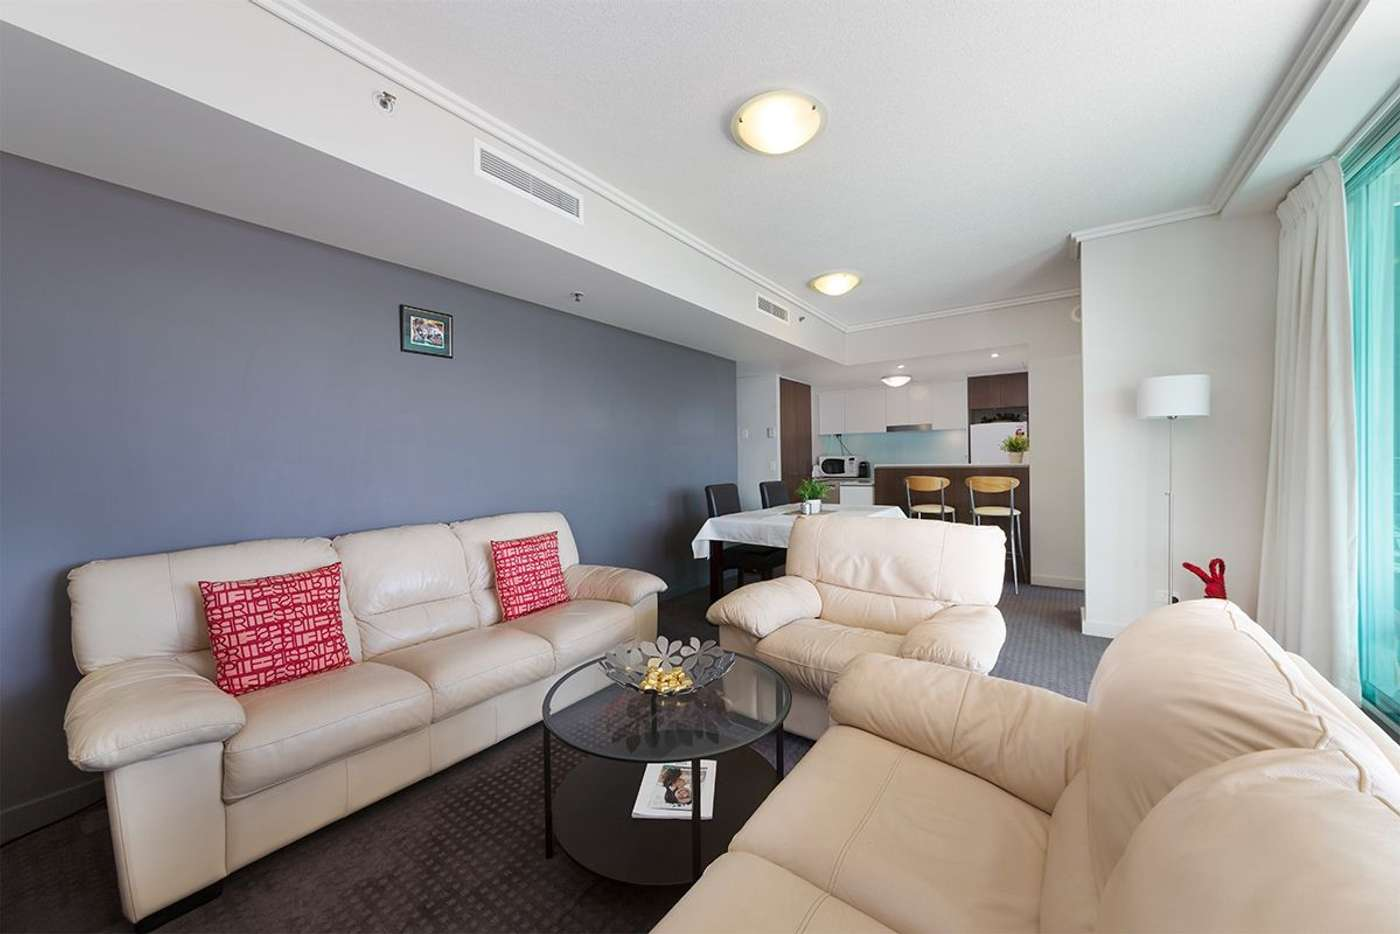 Sixth view of Homely unit listing, 1102/151 George Street, Brisbane City QLD 4000